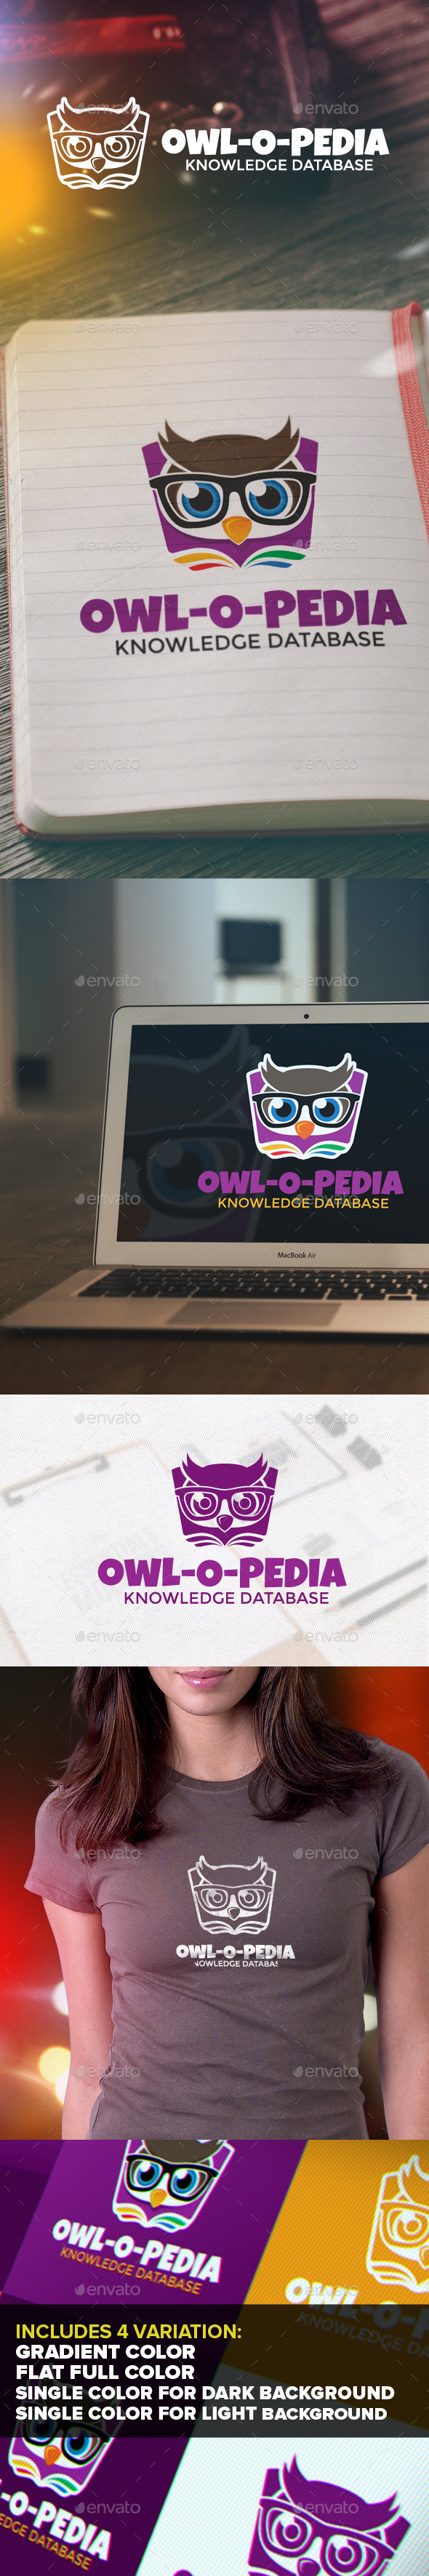 Owl-o-pedia Logo - Animals Logo Templates